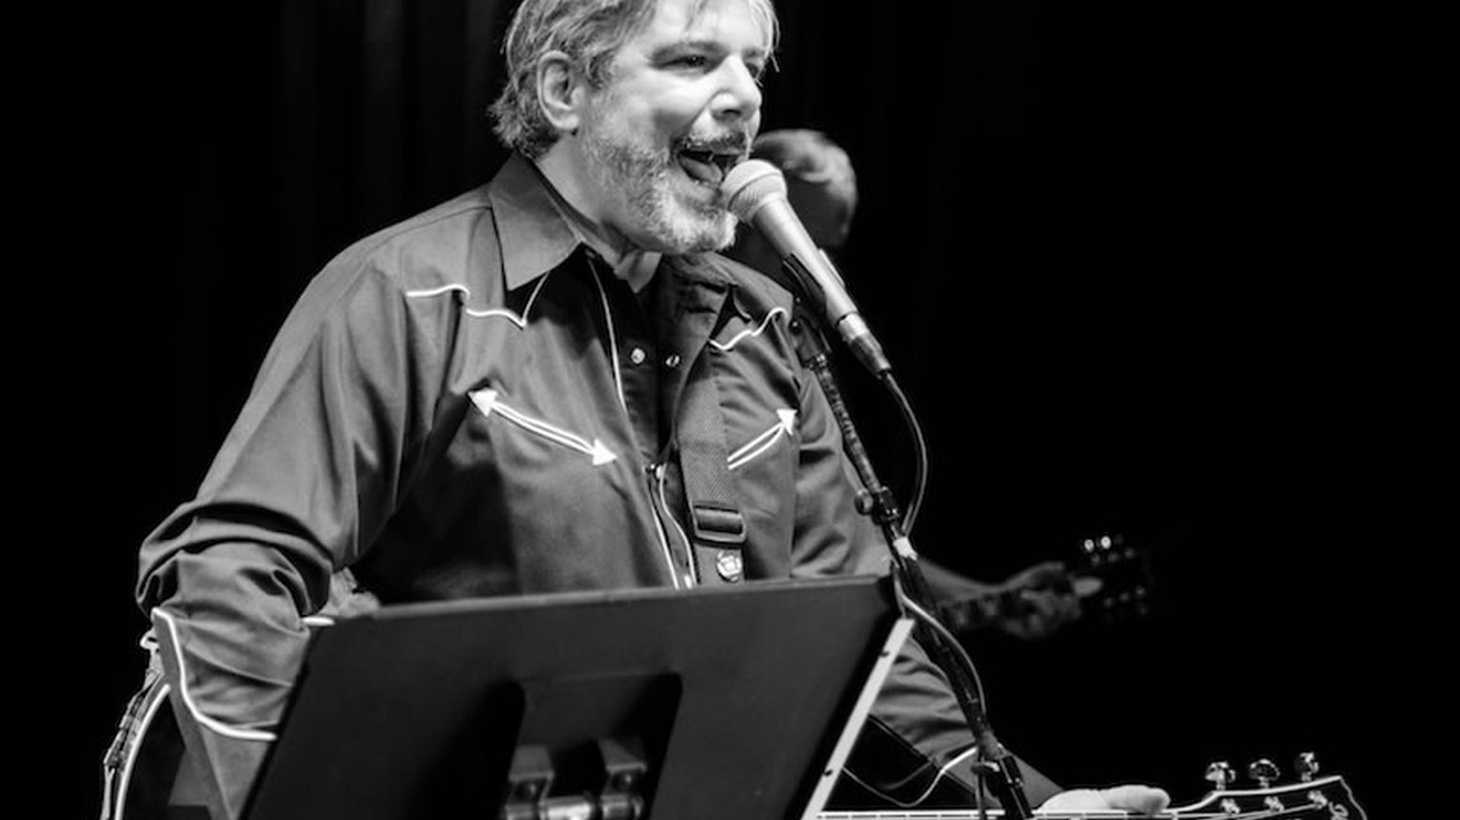 When he isn't spinning it, auditioning it or placing it on some of our favorite TV series, KCRW DJ turned prolific musician, Gary Calamar spends his time making music.